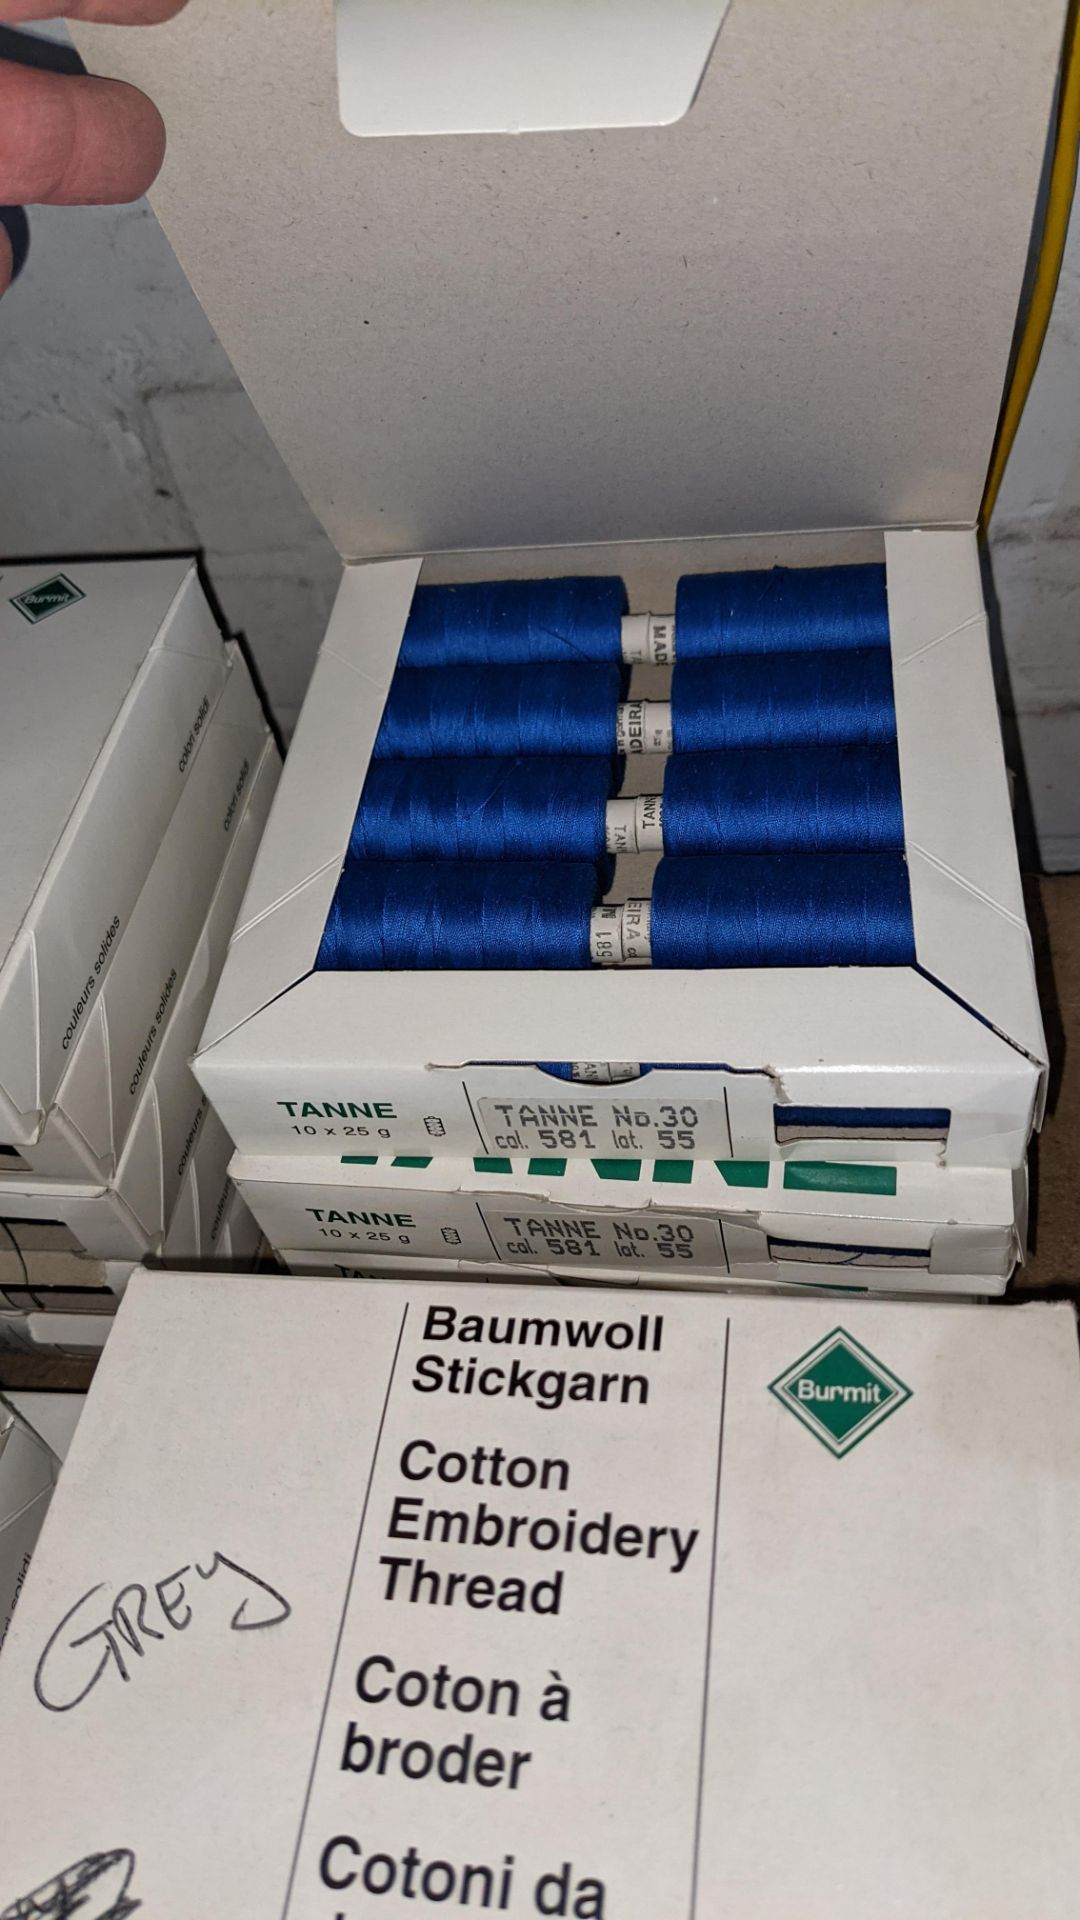 15 boxes of Madeira Tanne (Burmit) cotton embroidery thread - Image 8 of 8